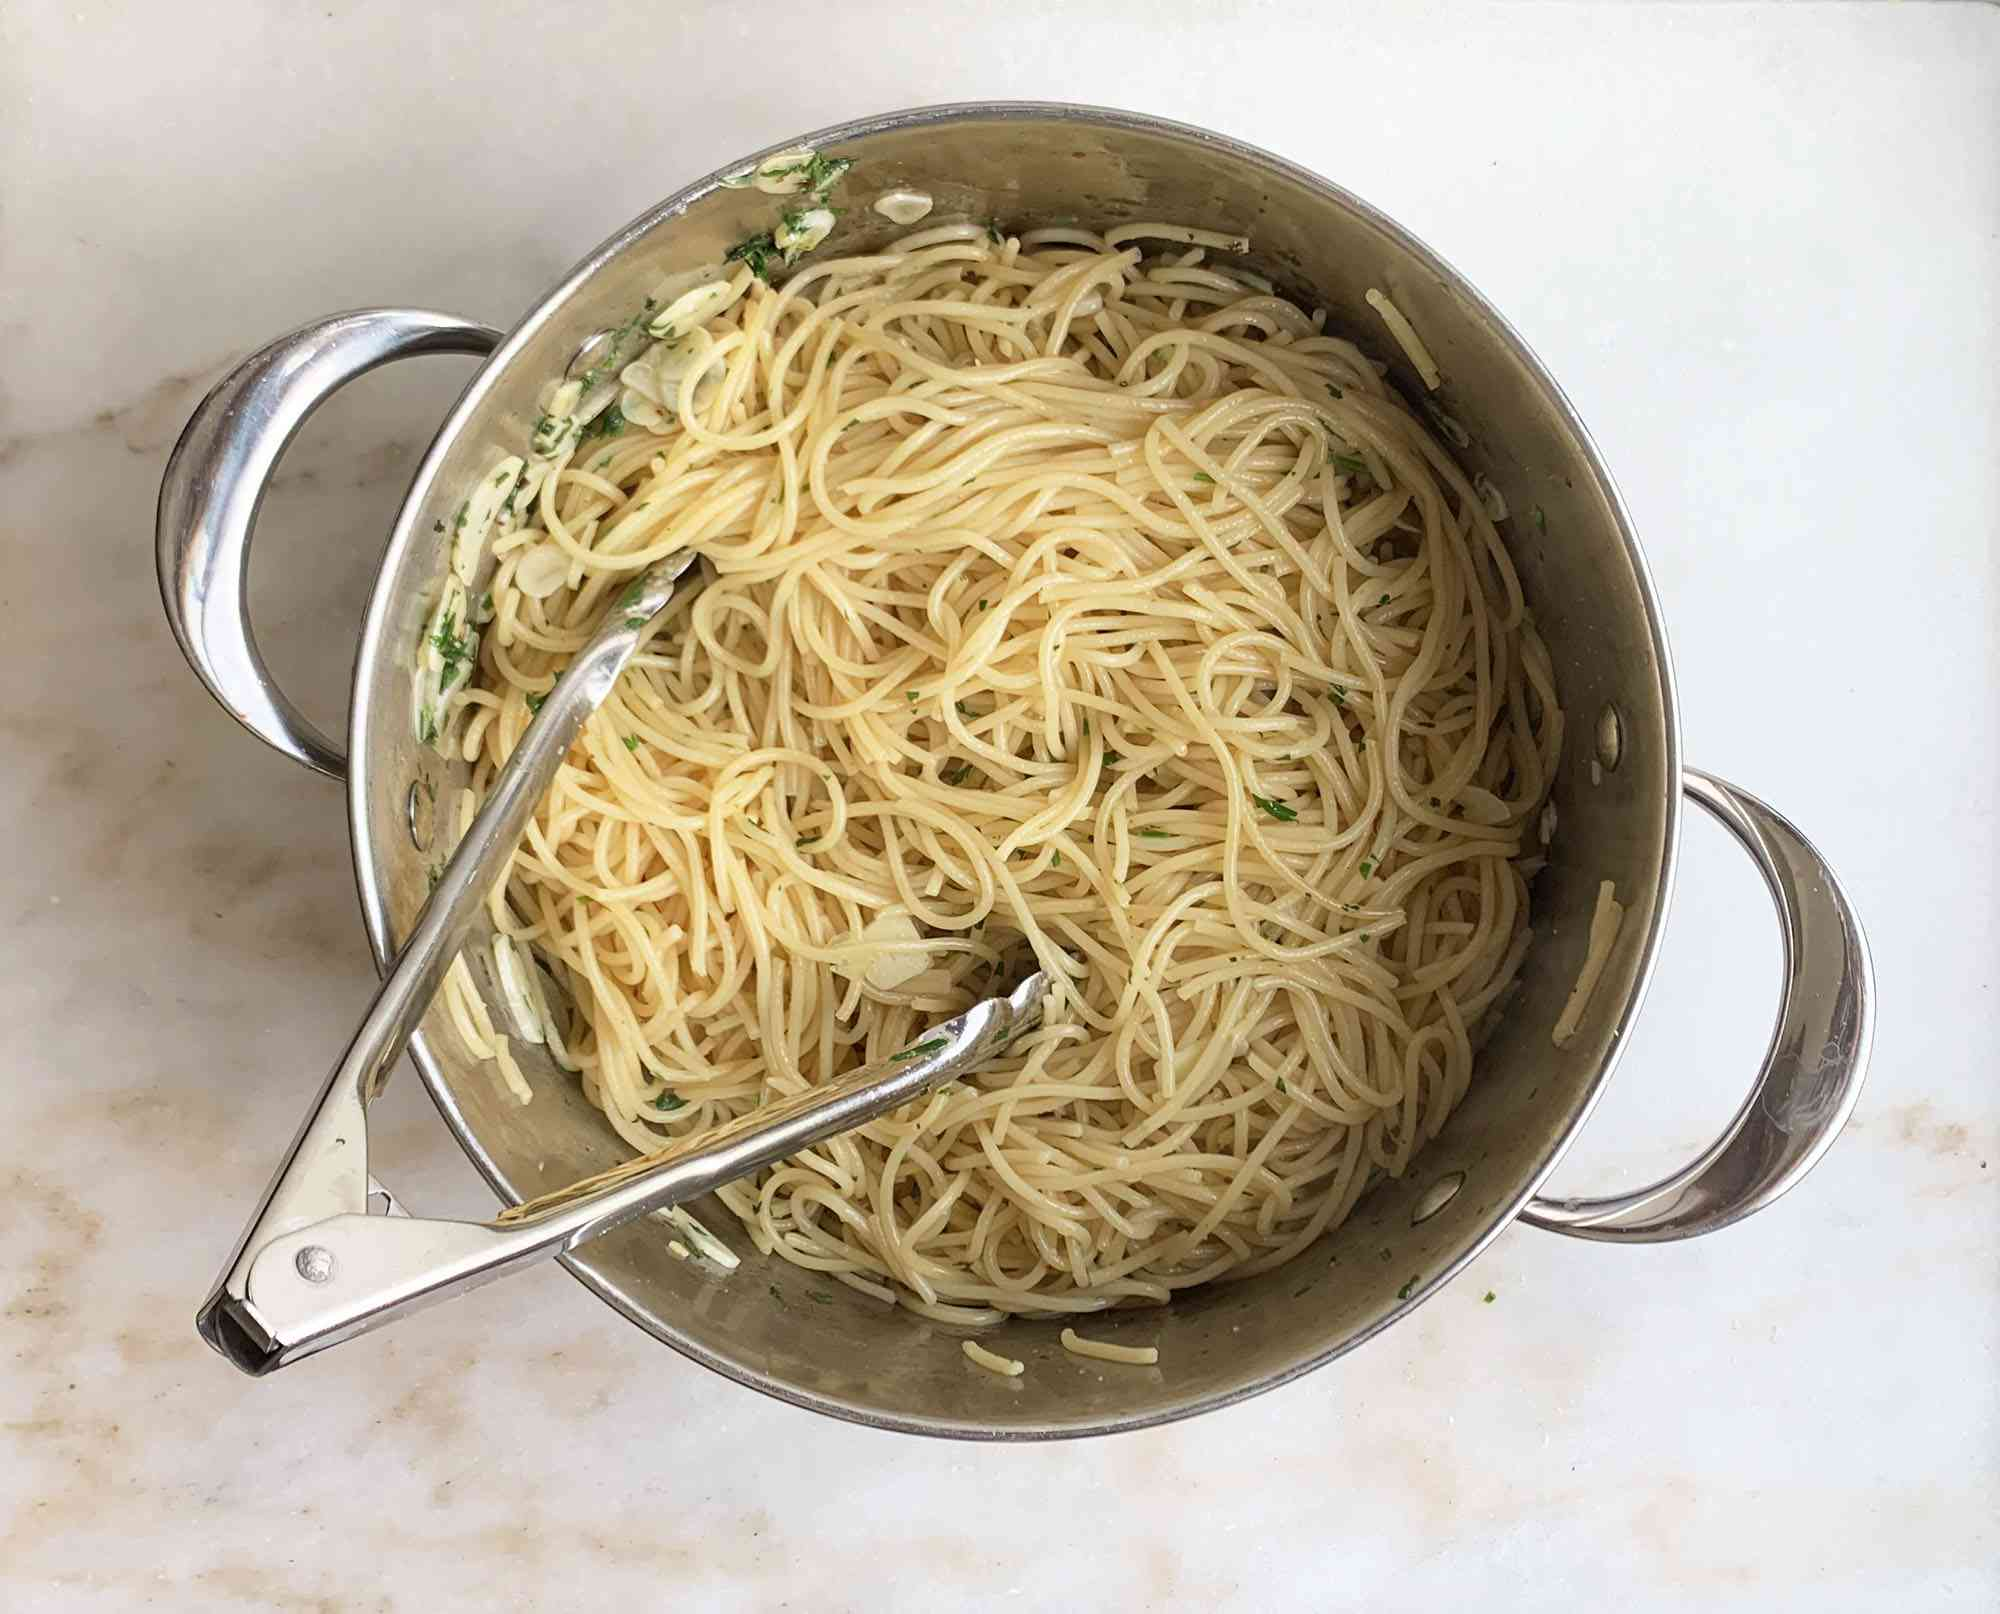 pasta tossed with garlic and oil